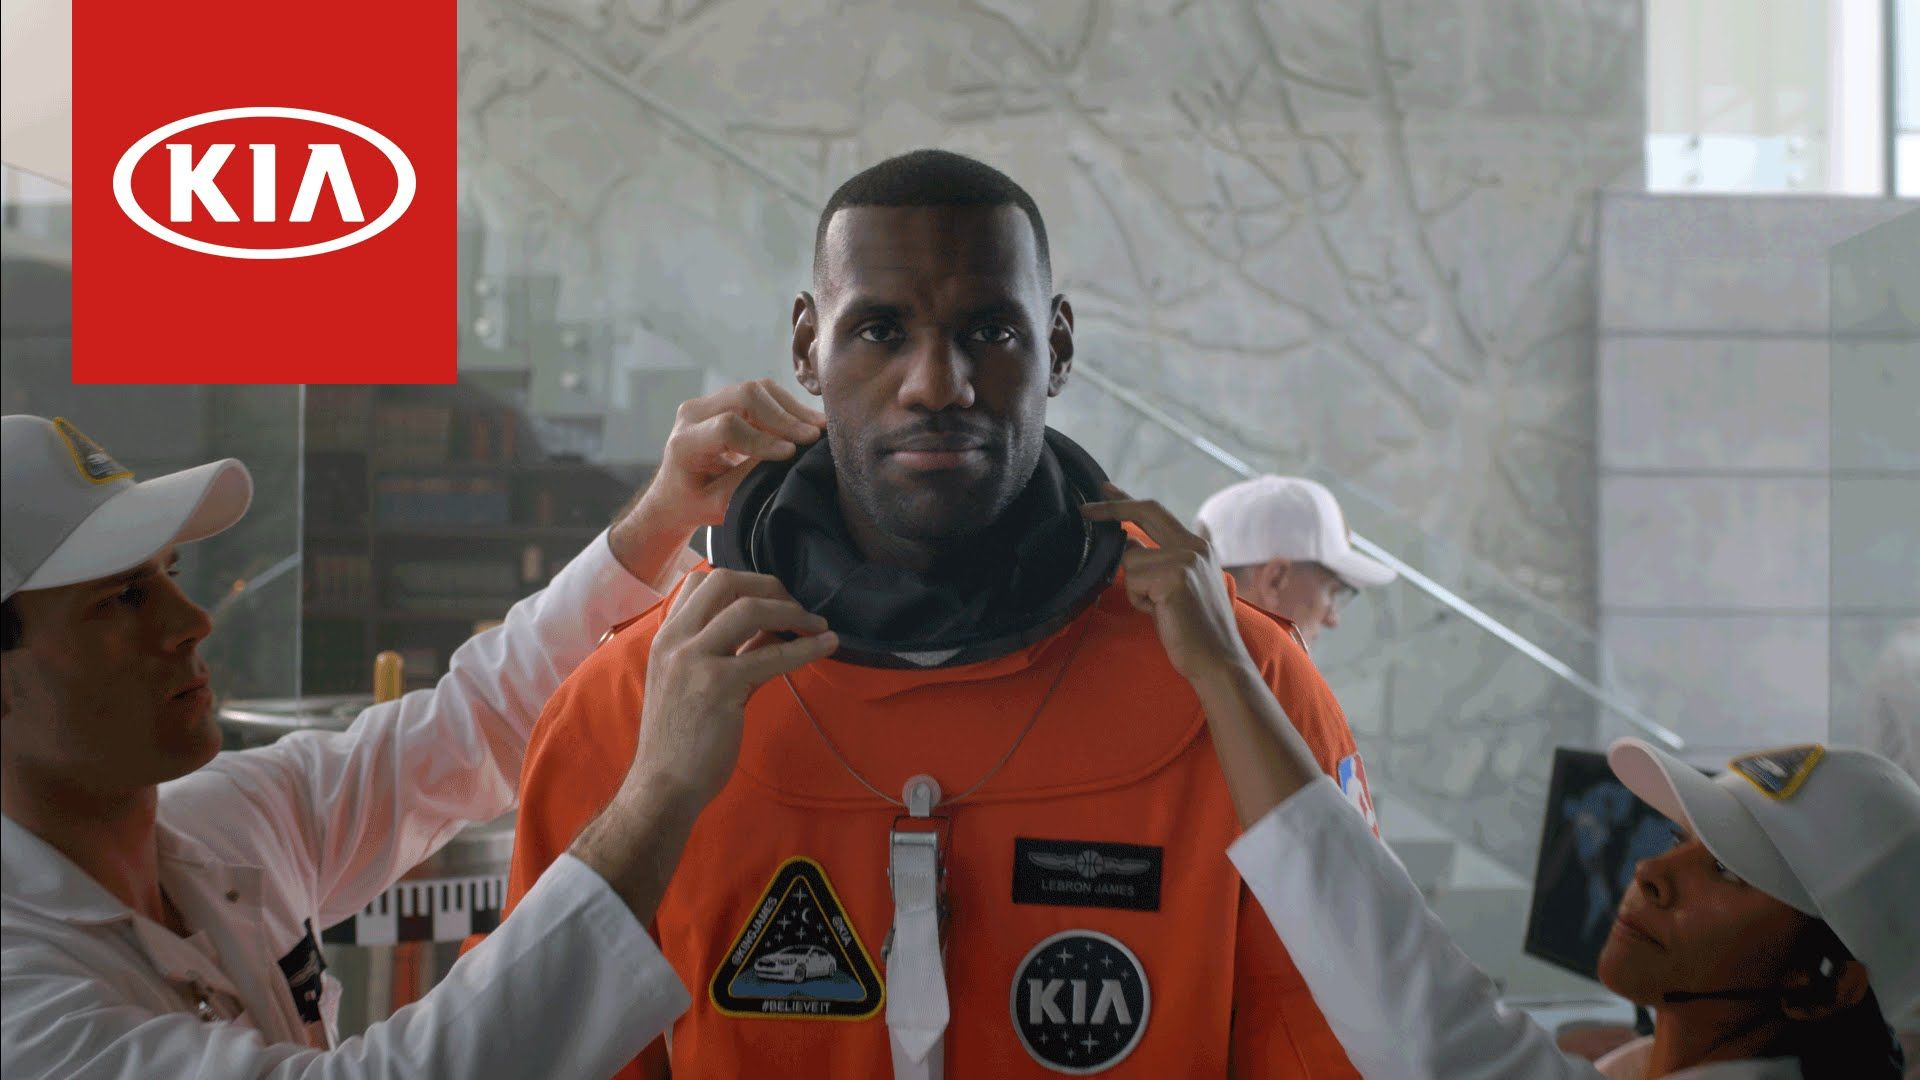 Kia K900 LeBron James Commercial Spaceship Official